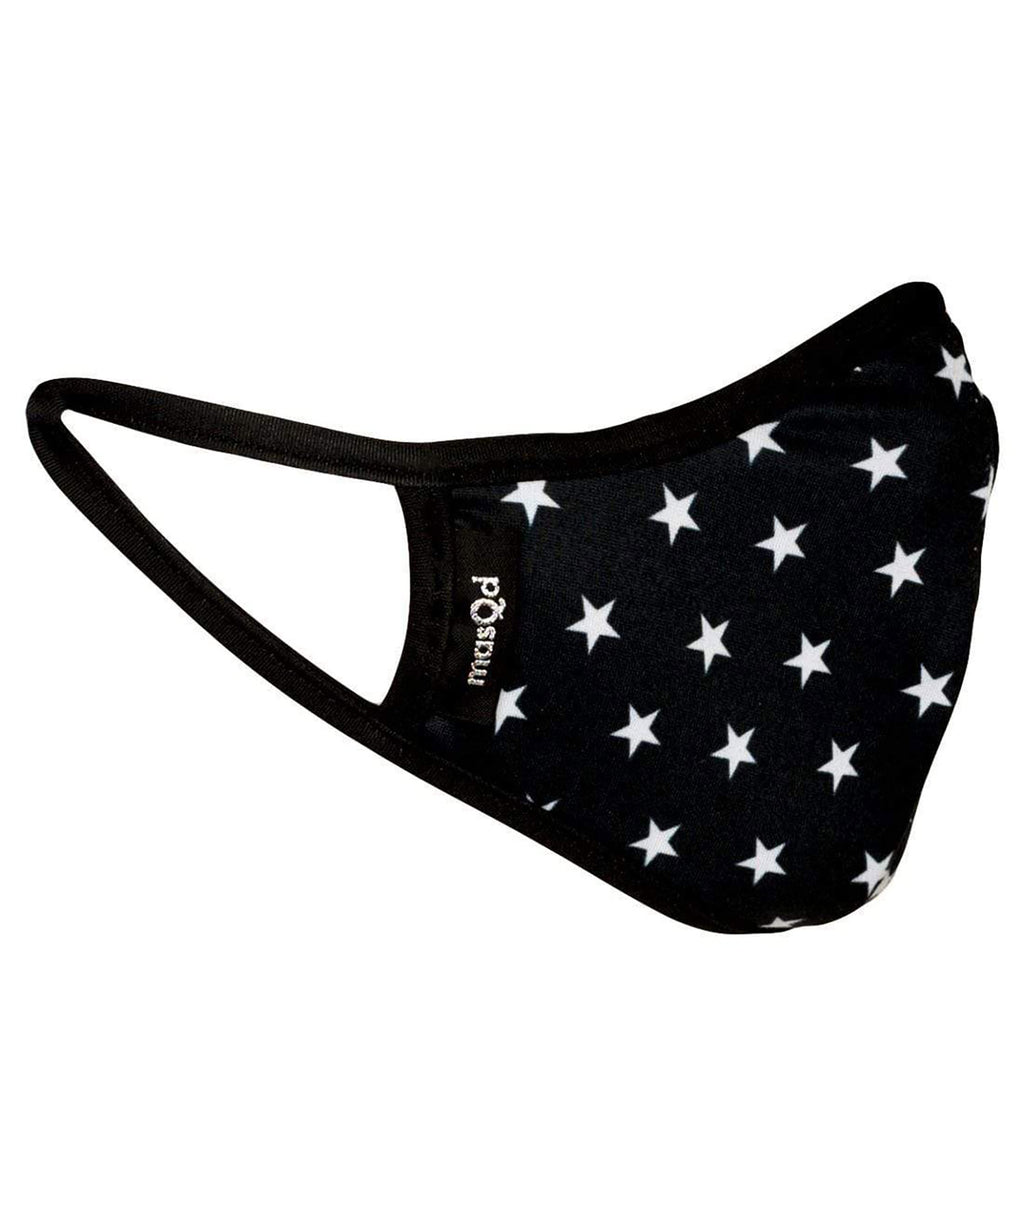 masQd Adults Mask With Filter Pocket Ultra Star